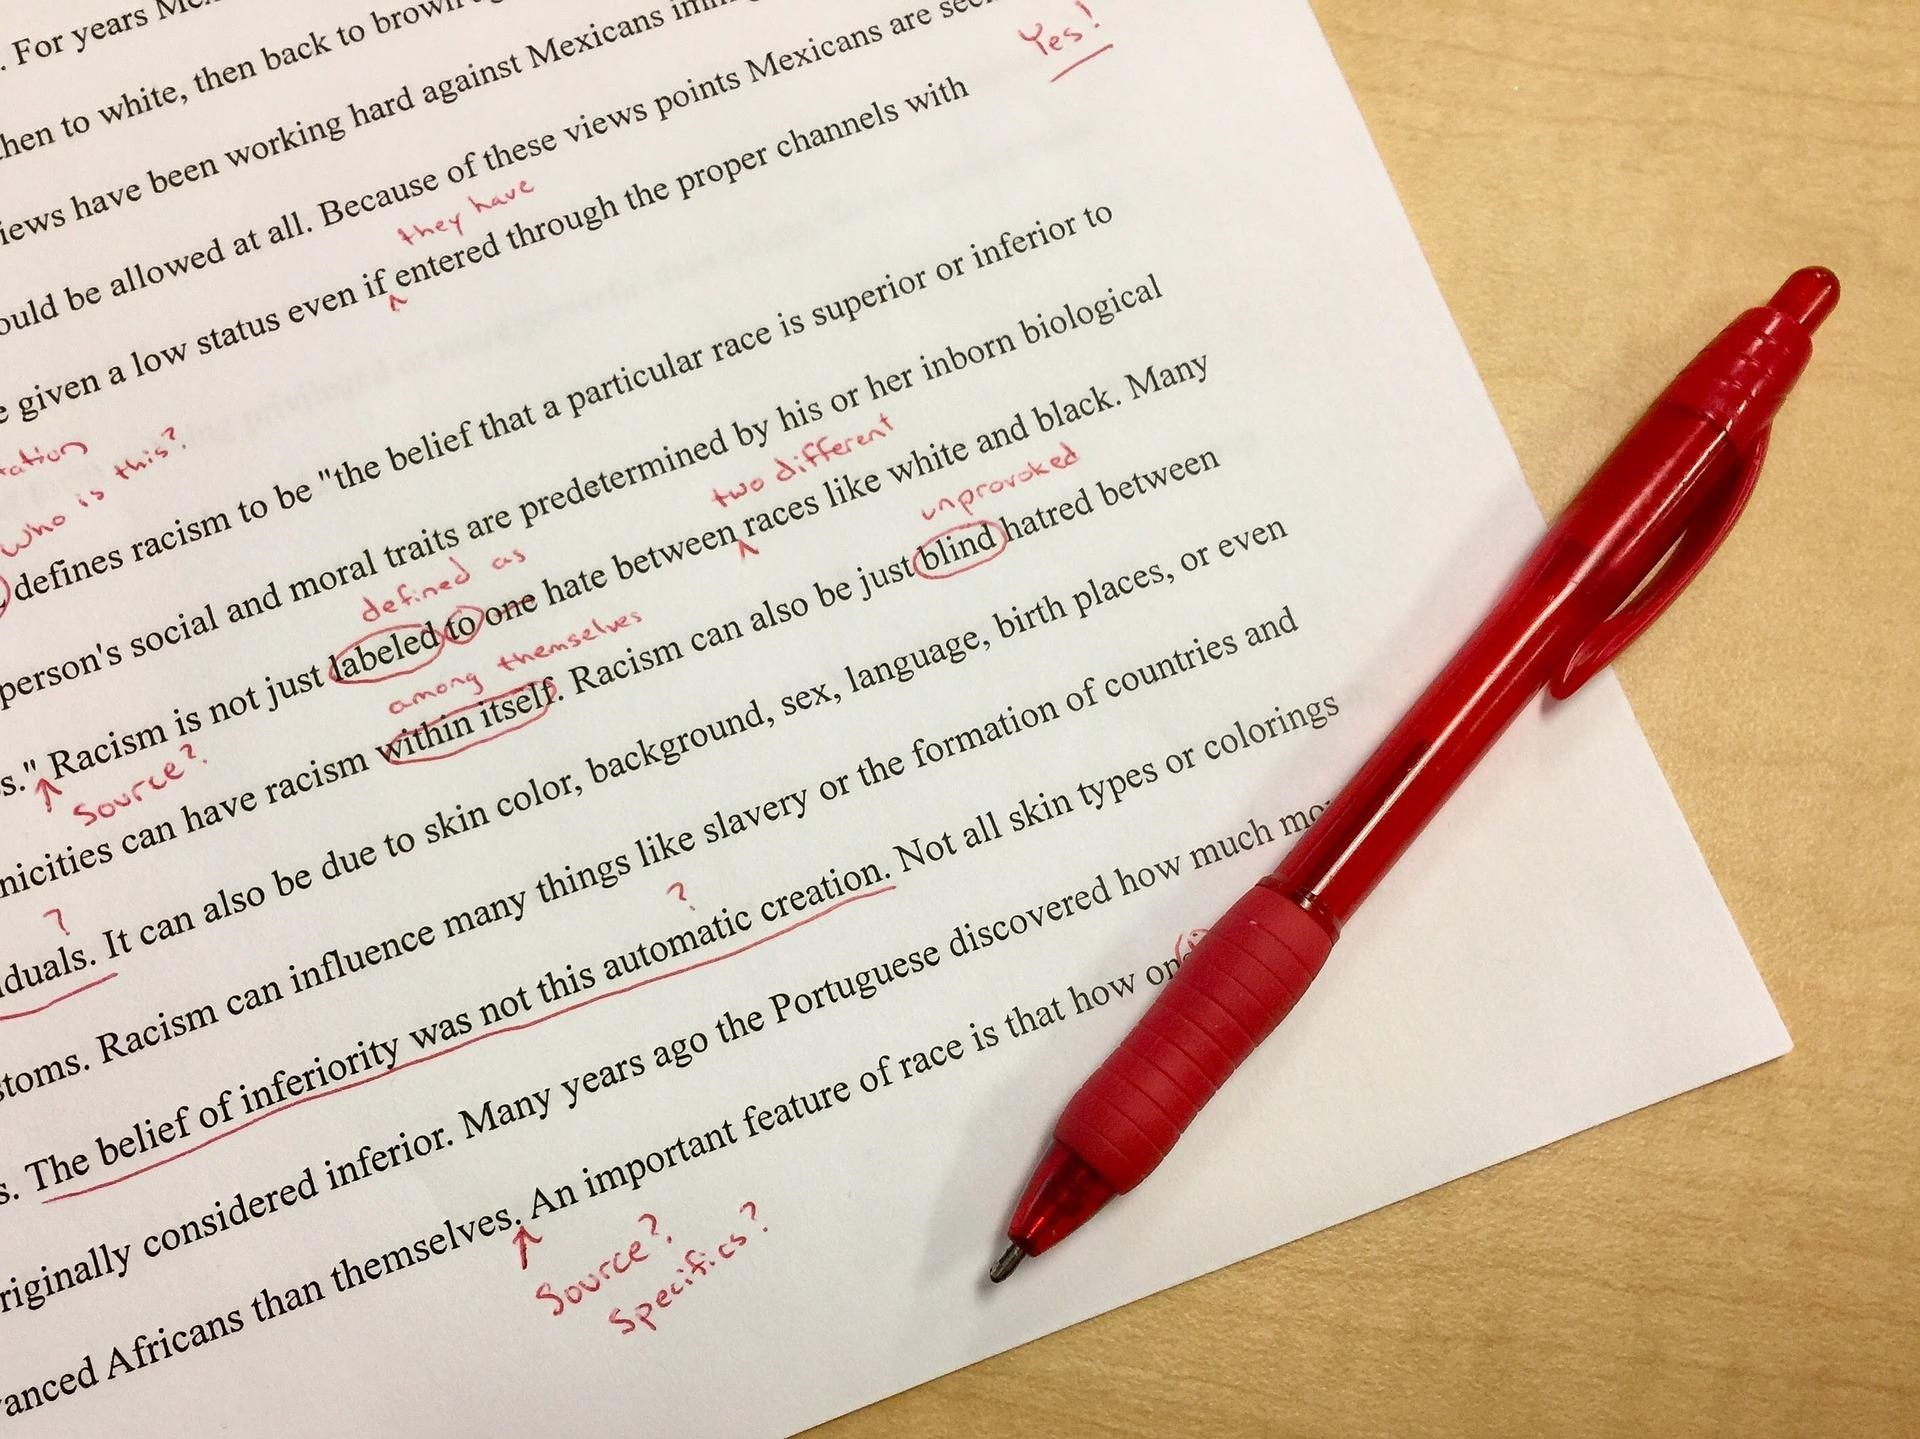 Time-saving hacks for Editing and Proofreading